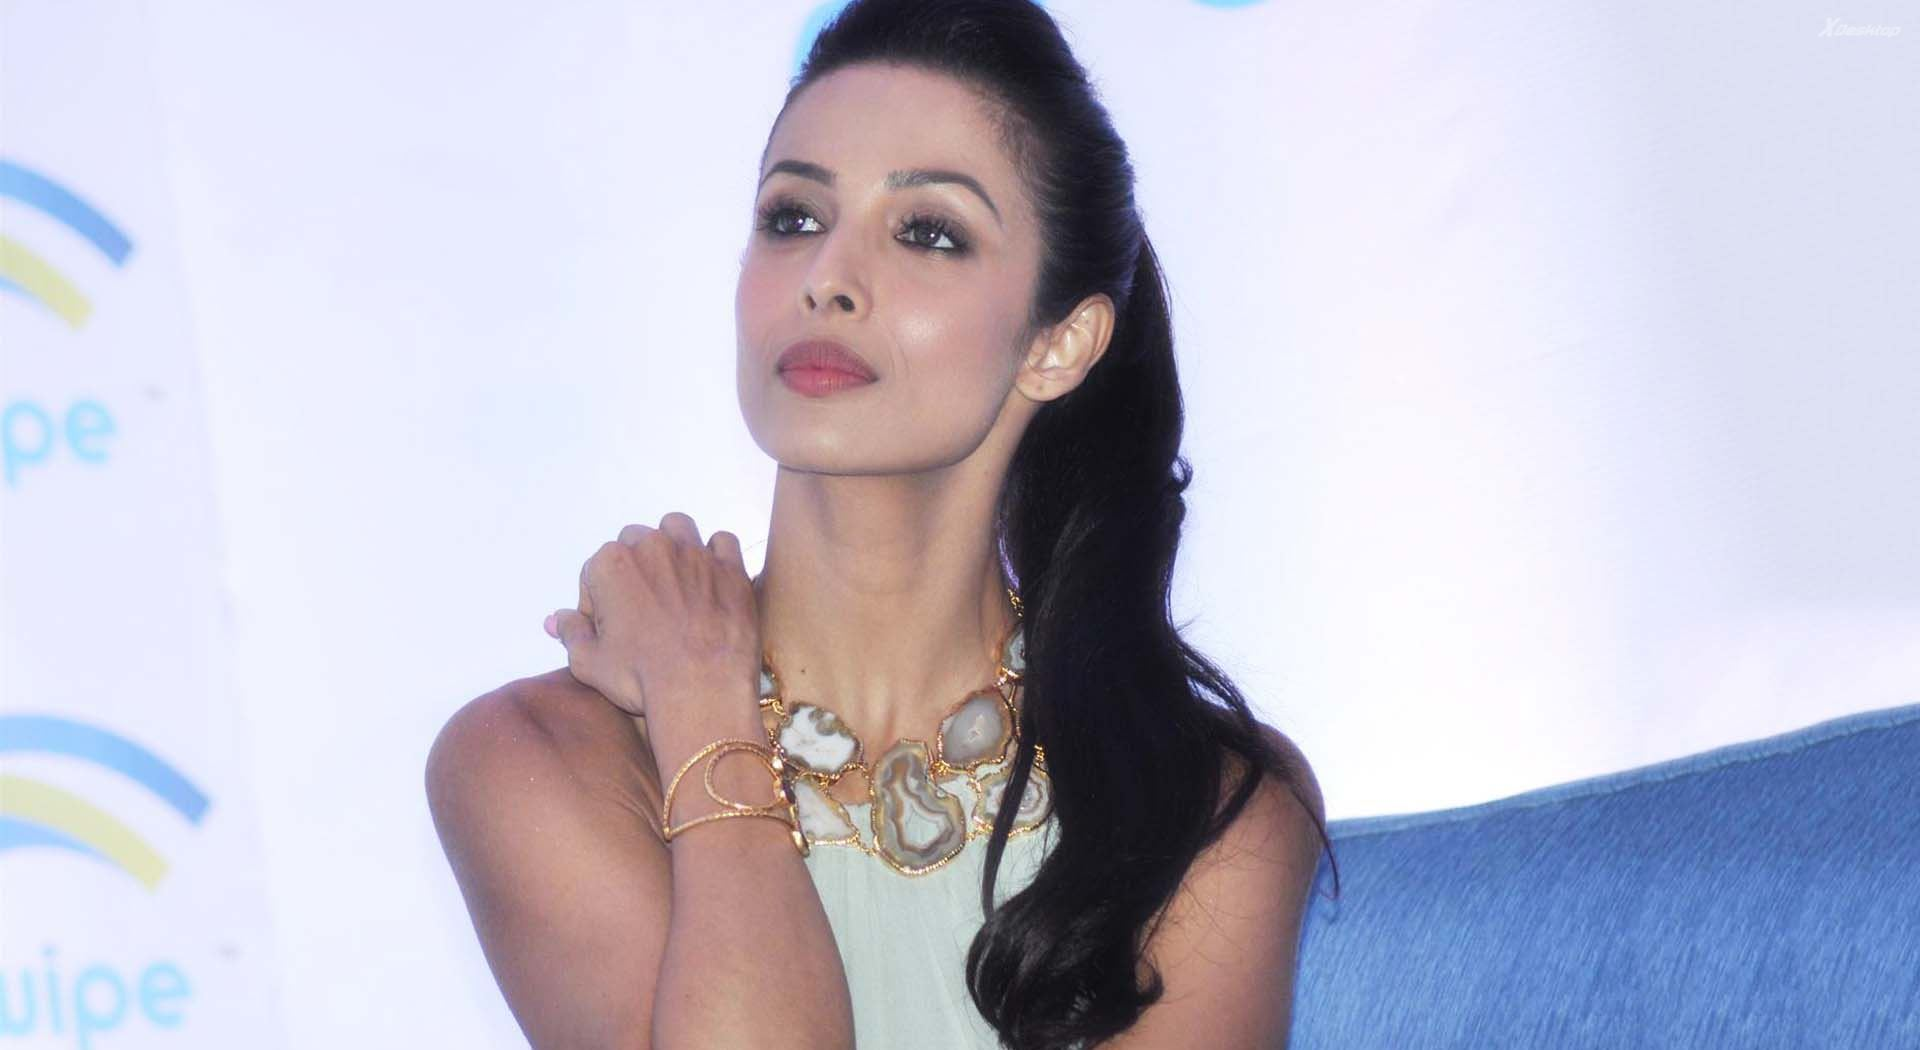 malaika-arora-cute-wallpapers